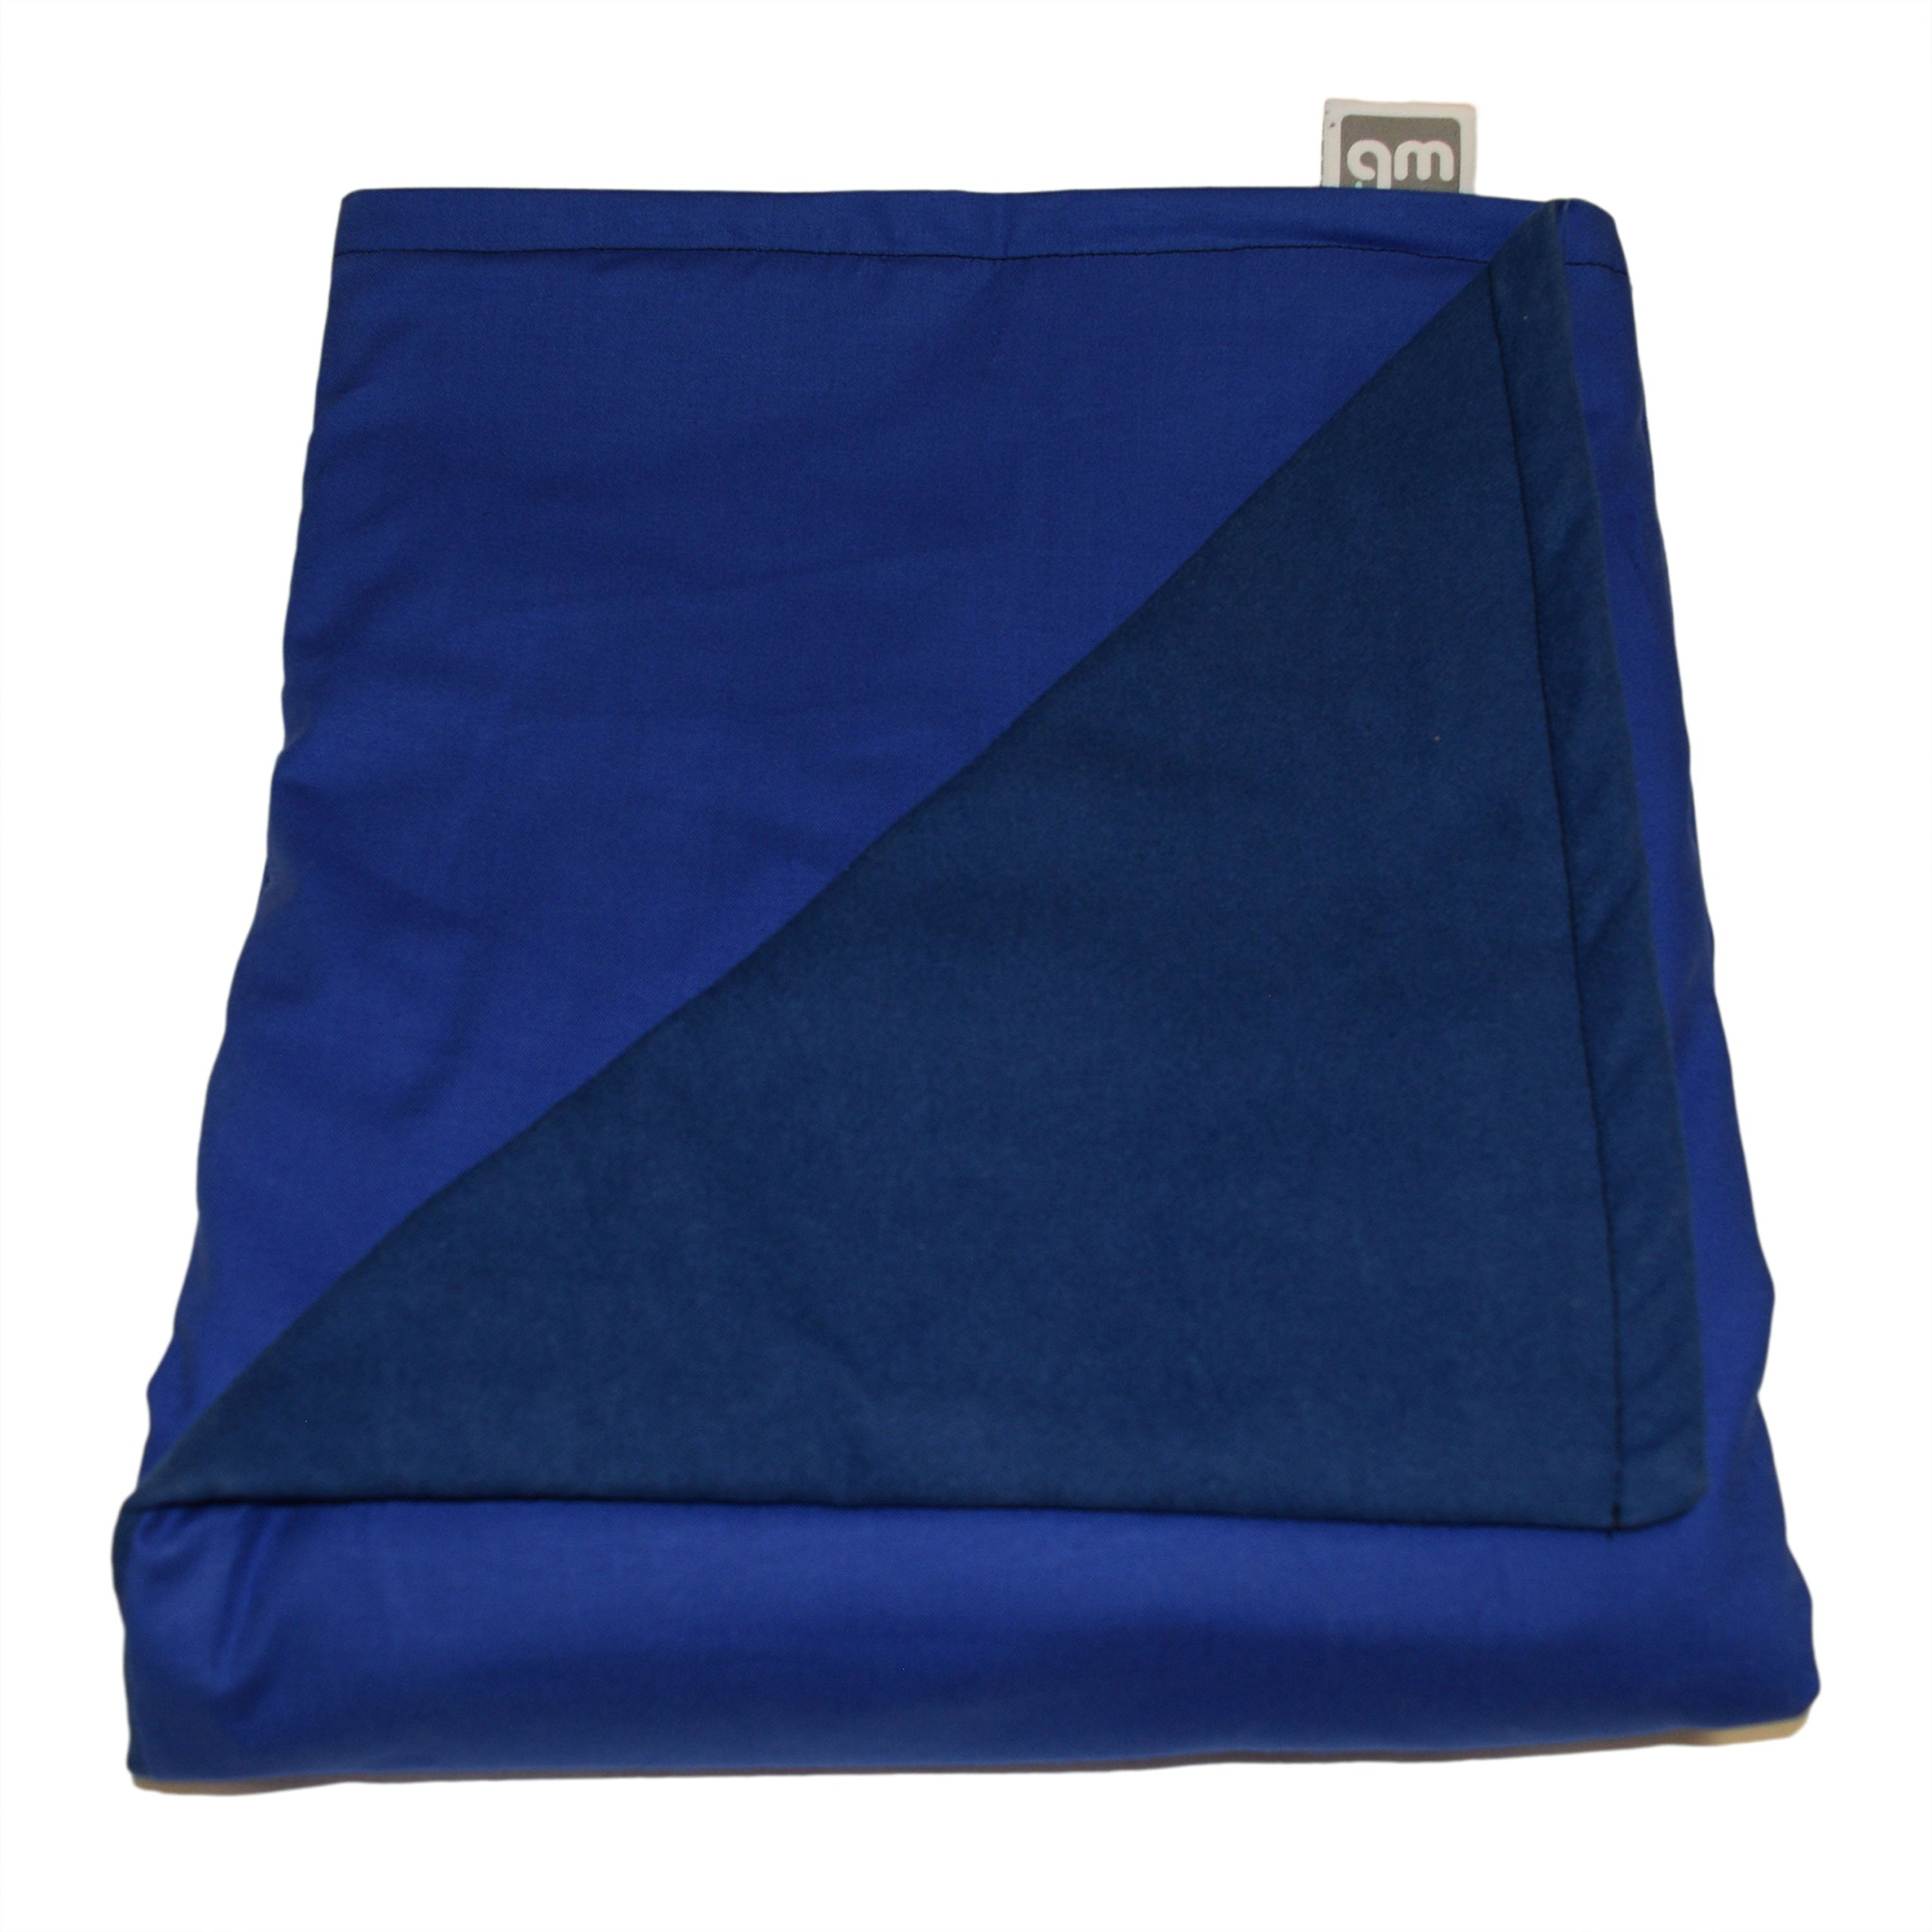 WEIGHTED BLANKETS PLUS LLC - Made in America - Child Deluxe Small Weighted Blanket - Blue - Cotton/Flannel (52'' L x 40'' W) 6lb Medium Pressure.